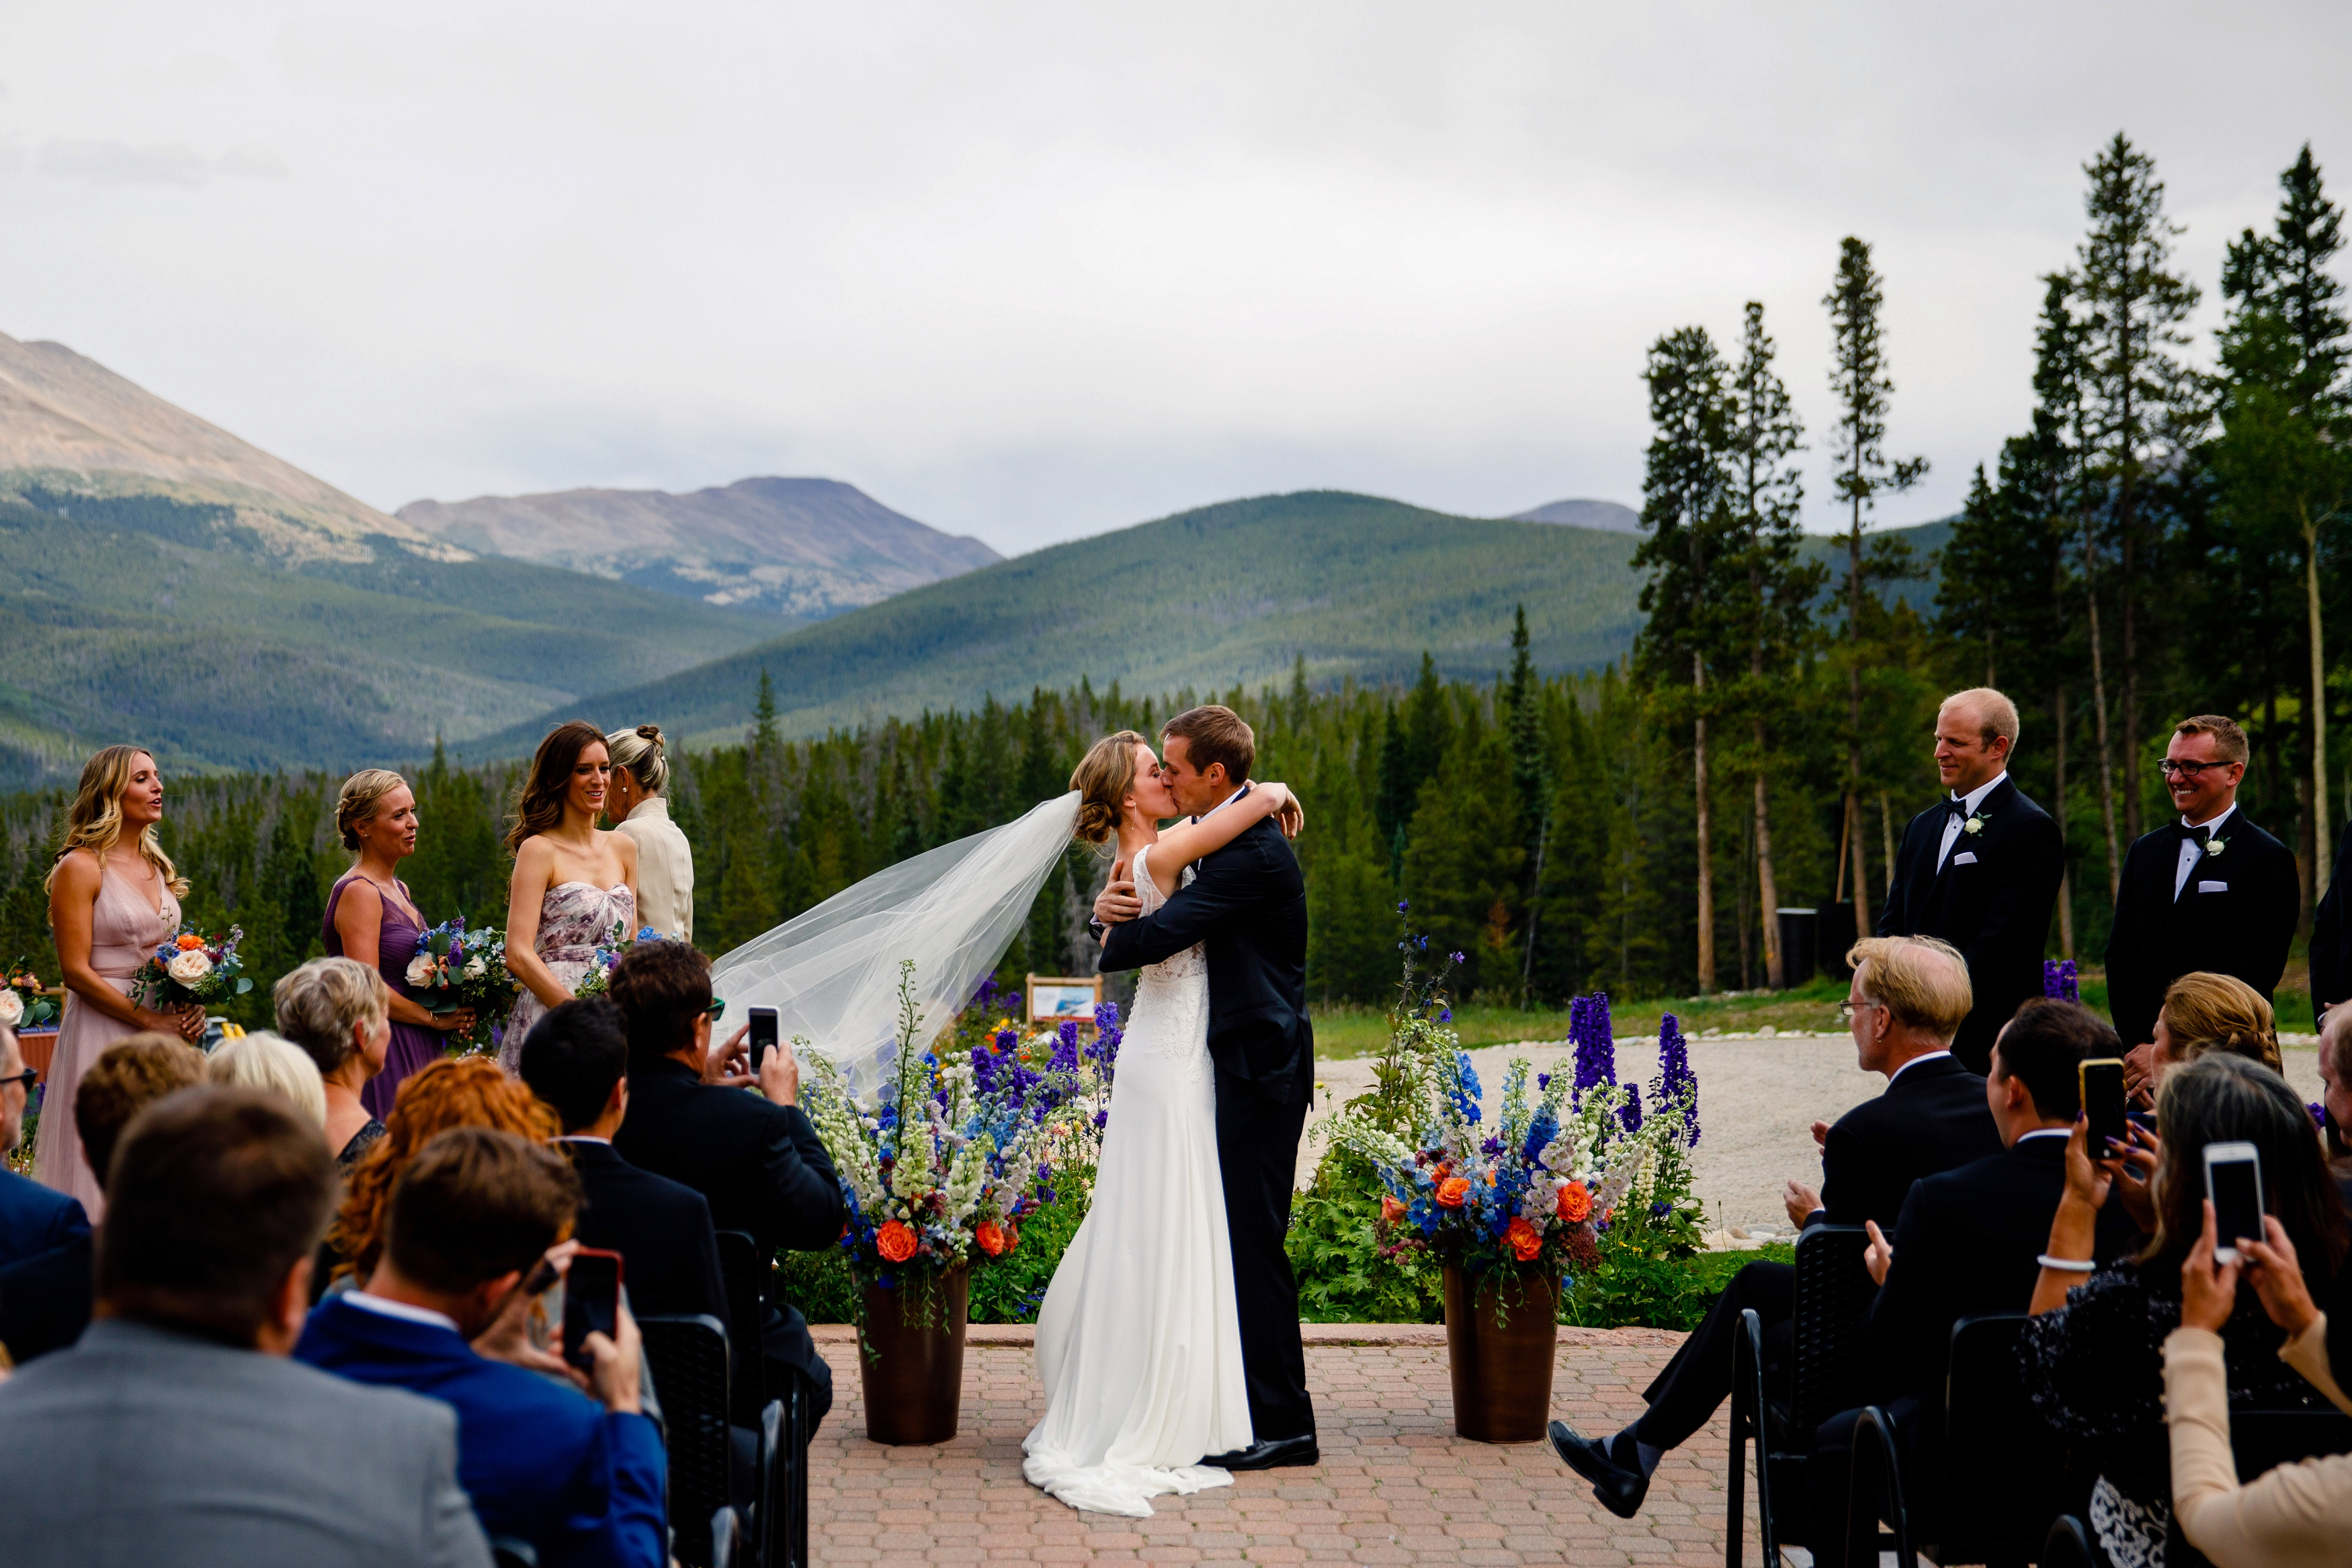 Nick & Lauren's first kiss during their TenMile Station Wedding in Breckenridge, CO